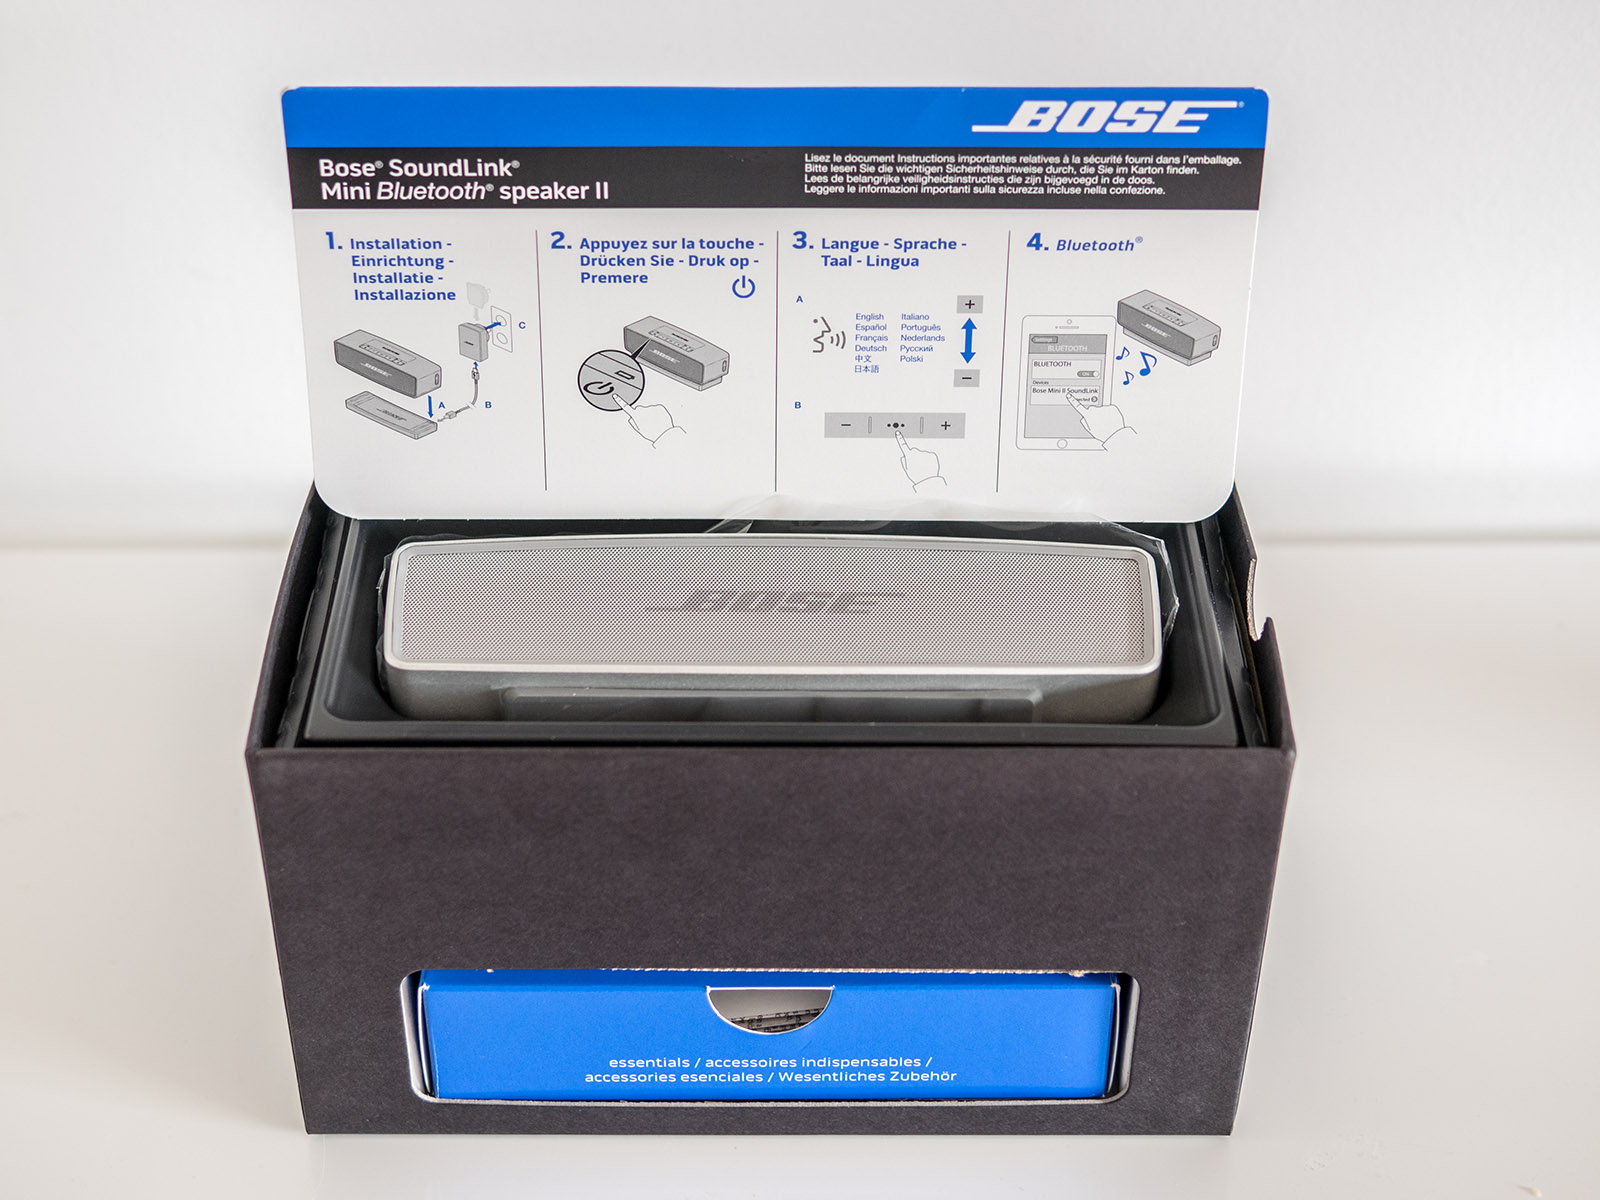 Oluv's Gadgets: Review: Bose Soundlink Mini II - lots of